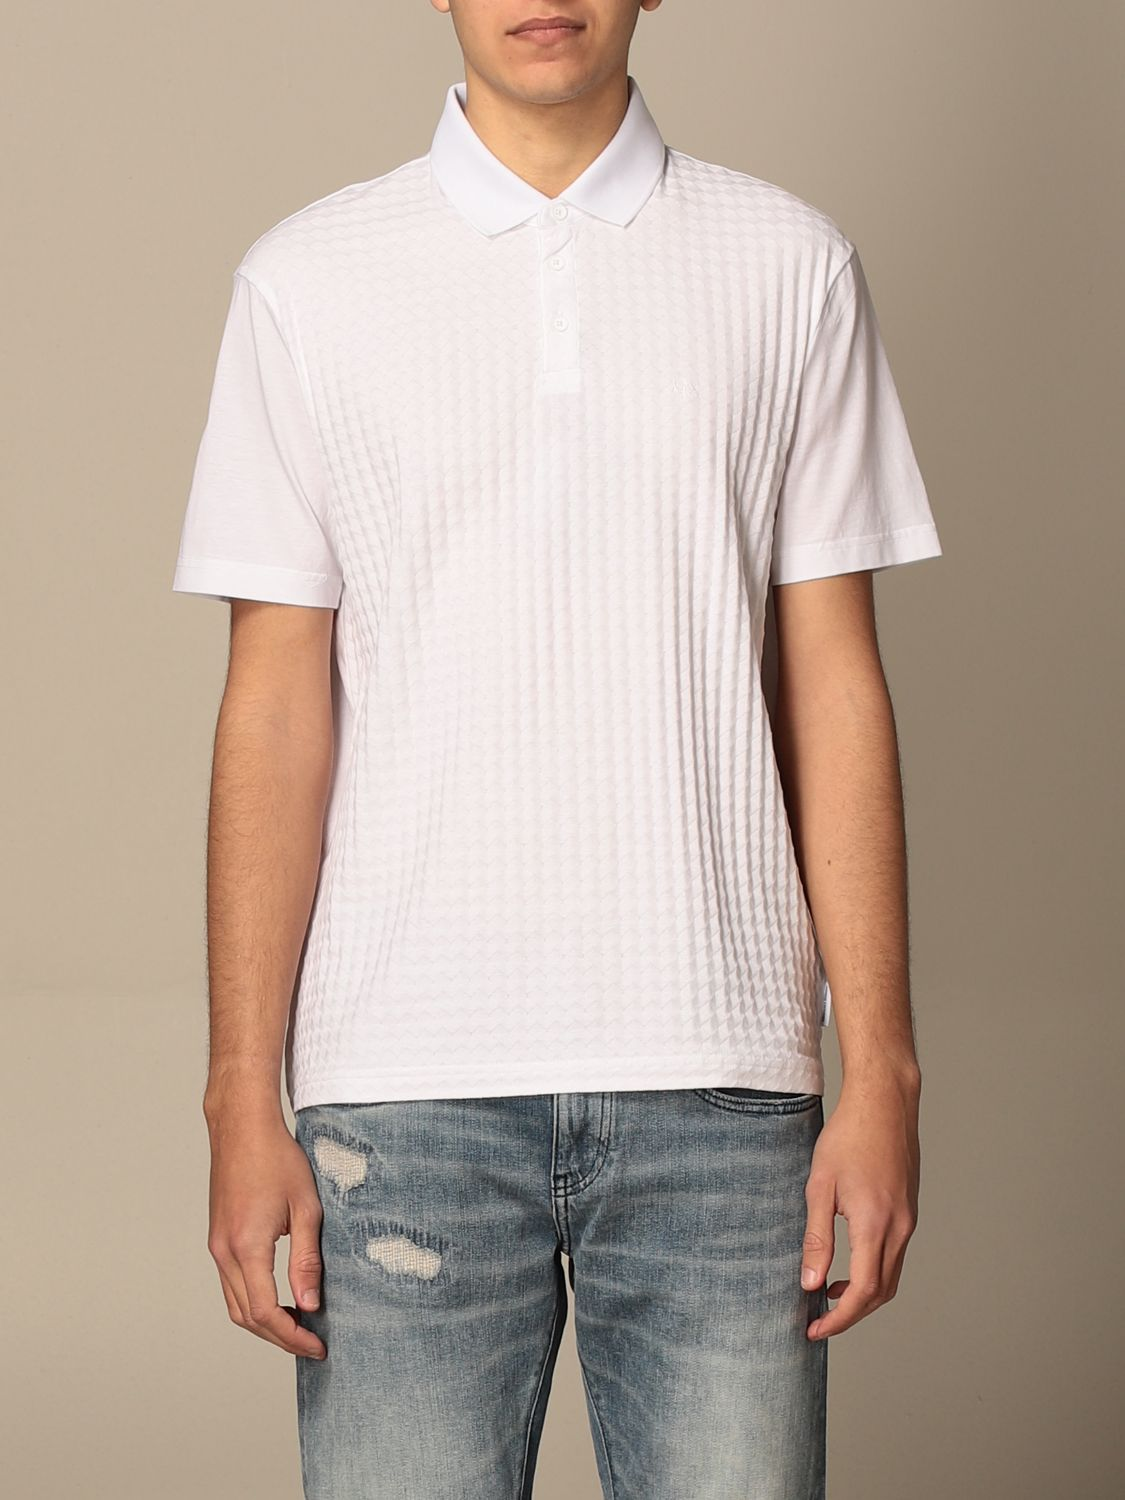 Polo shirt Armani Exchange: Polo shirt men Armani Exchange white 1